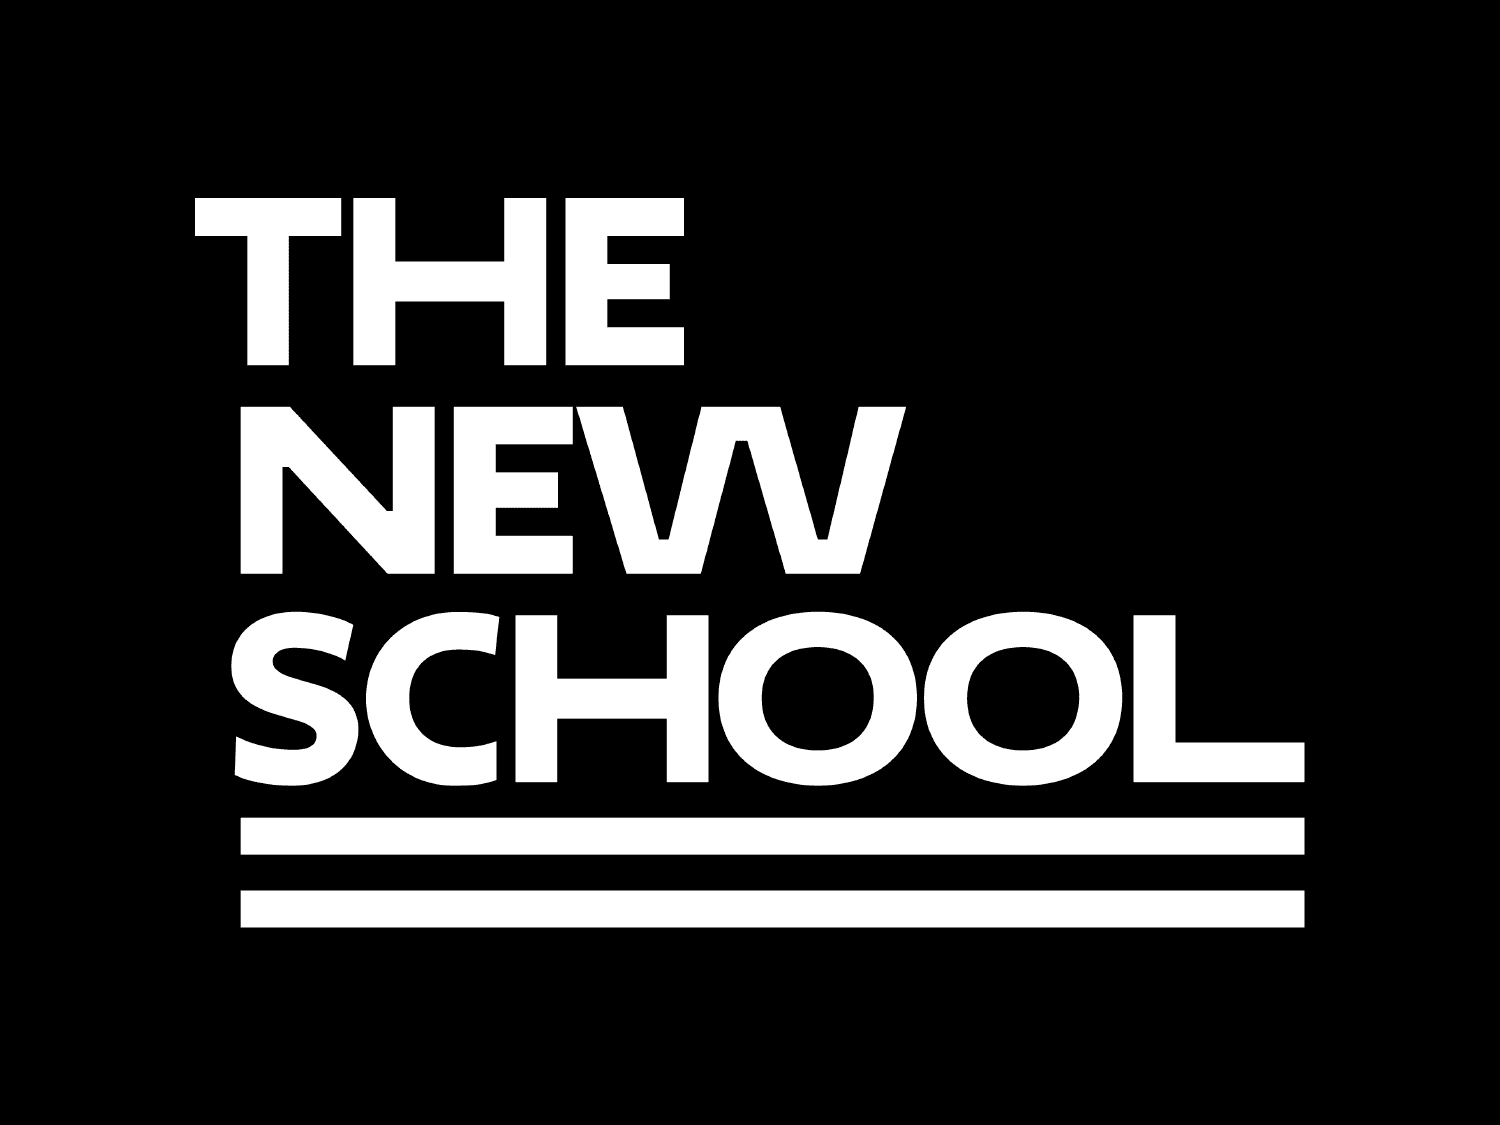 The New School Identity